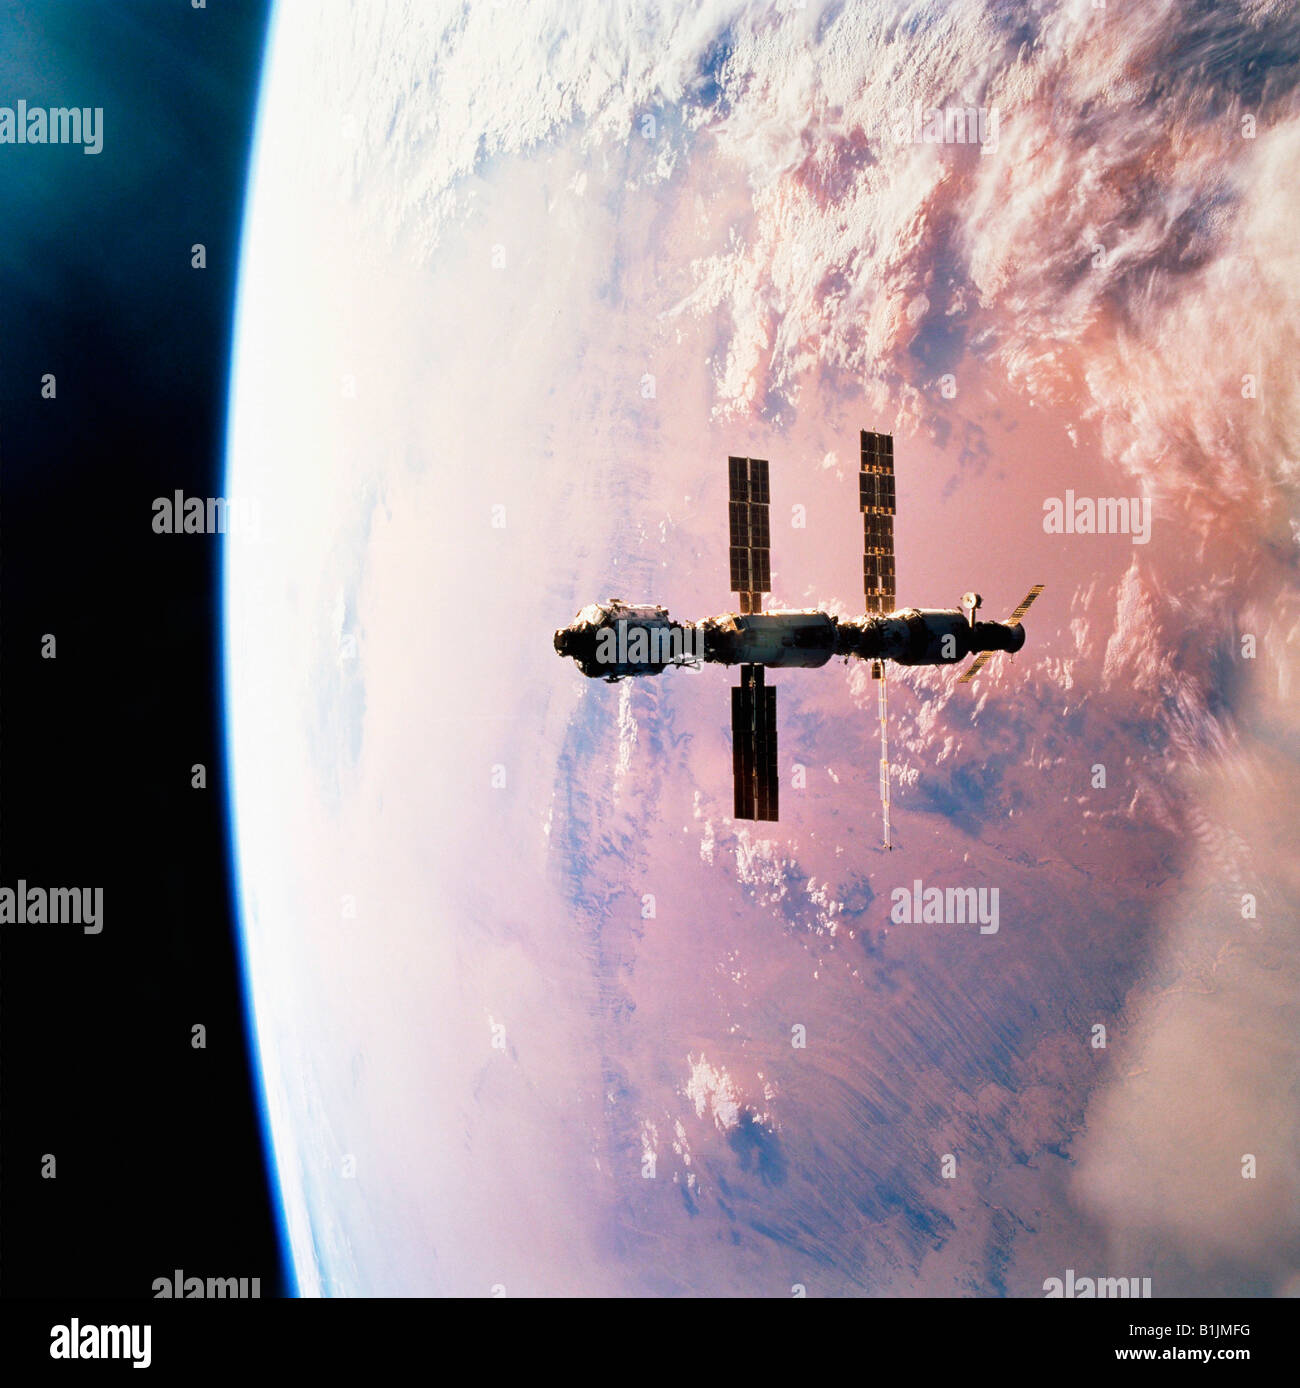 International Space Station in orbit around the Earth Above The Sahara Desert - Stock Image